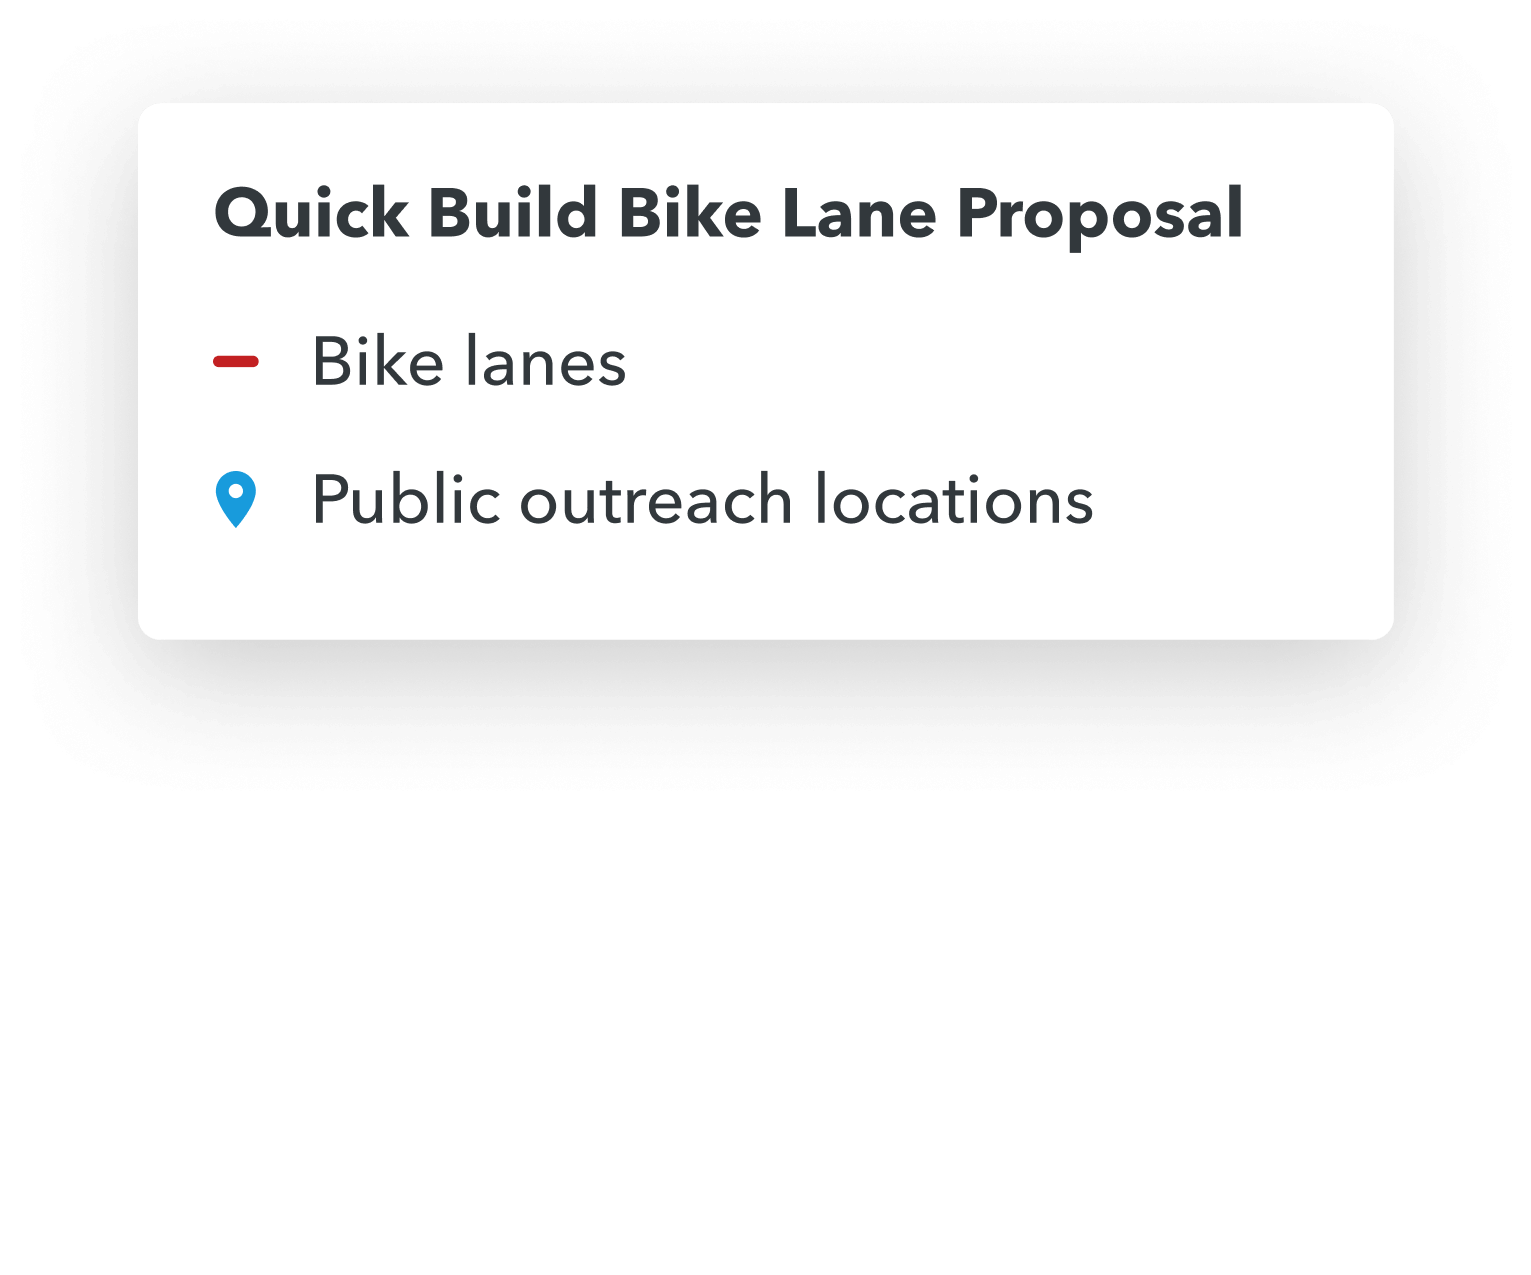 quick build bike lane proposal legend